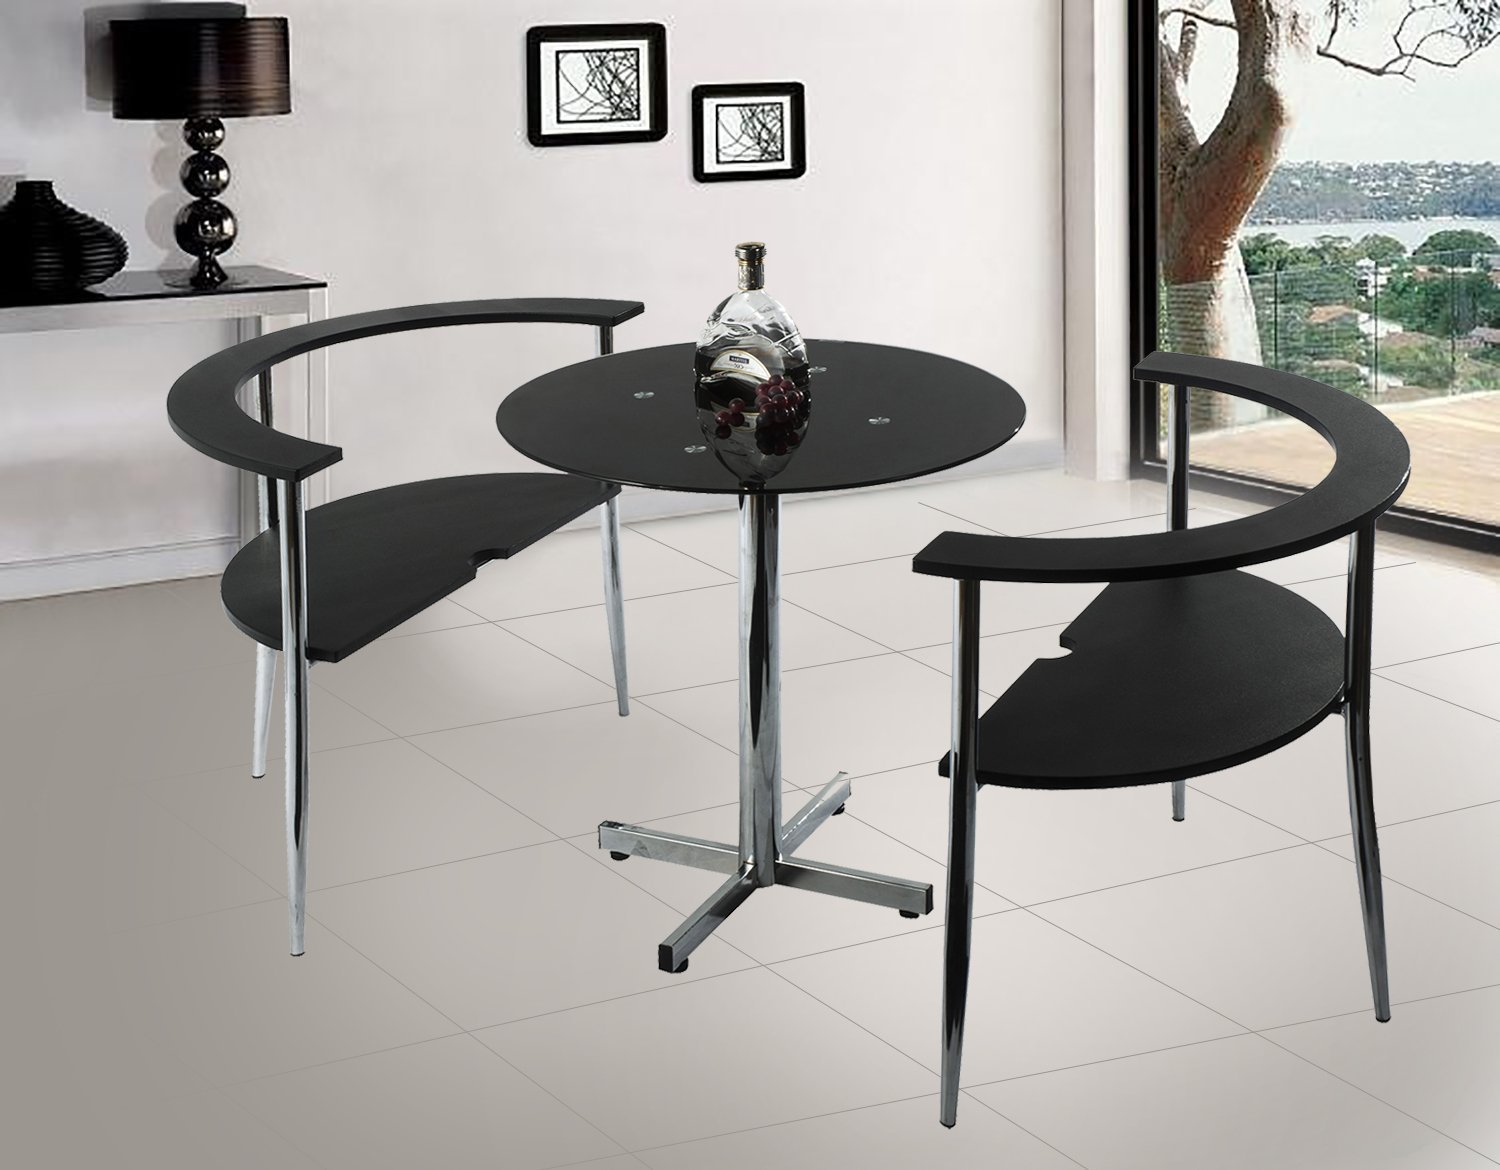 Merax 3-Pieces Dining Sets, Dining Table with Glass Top and Sturdy Metal Legs, 2chairs Included,Black